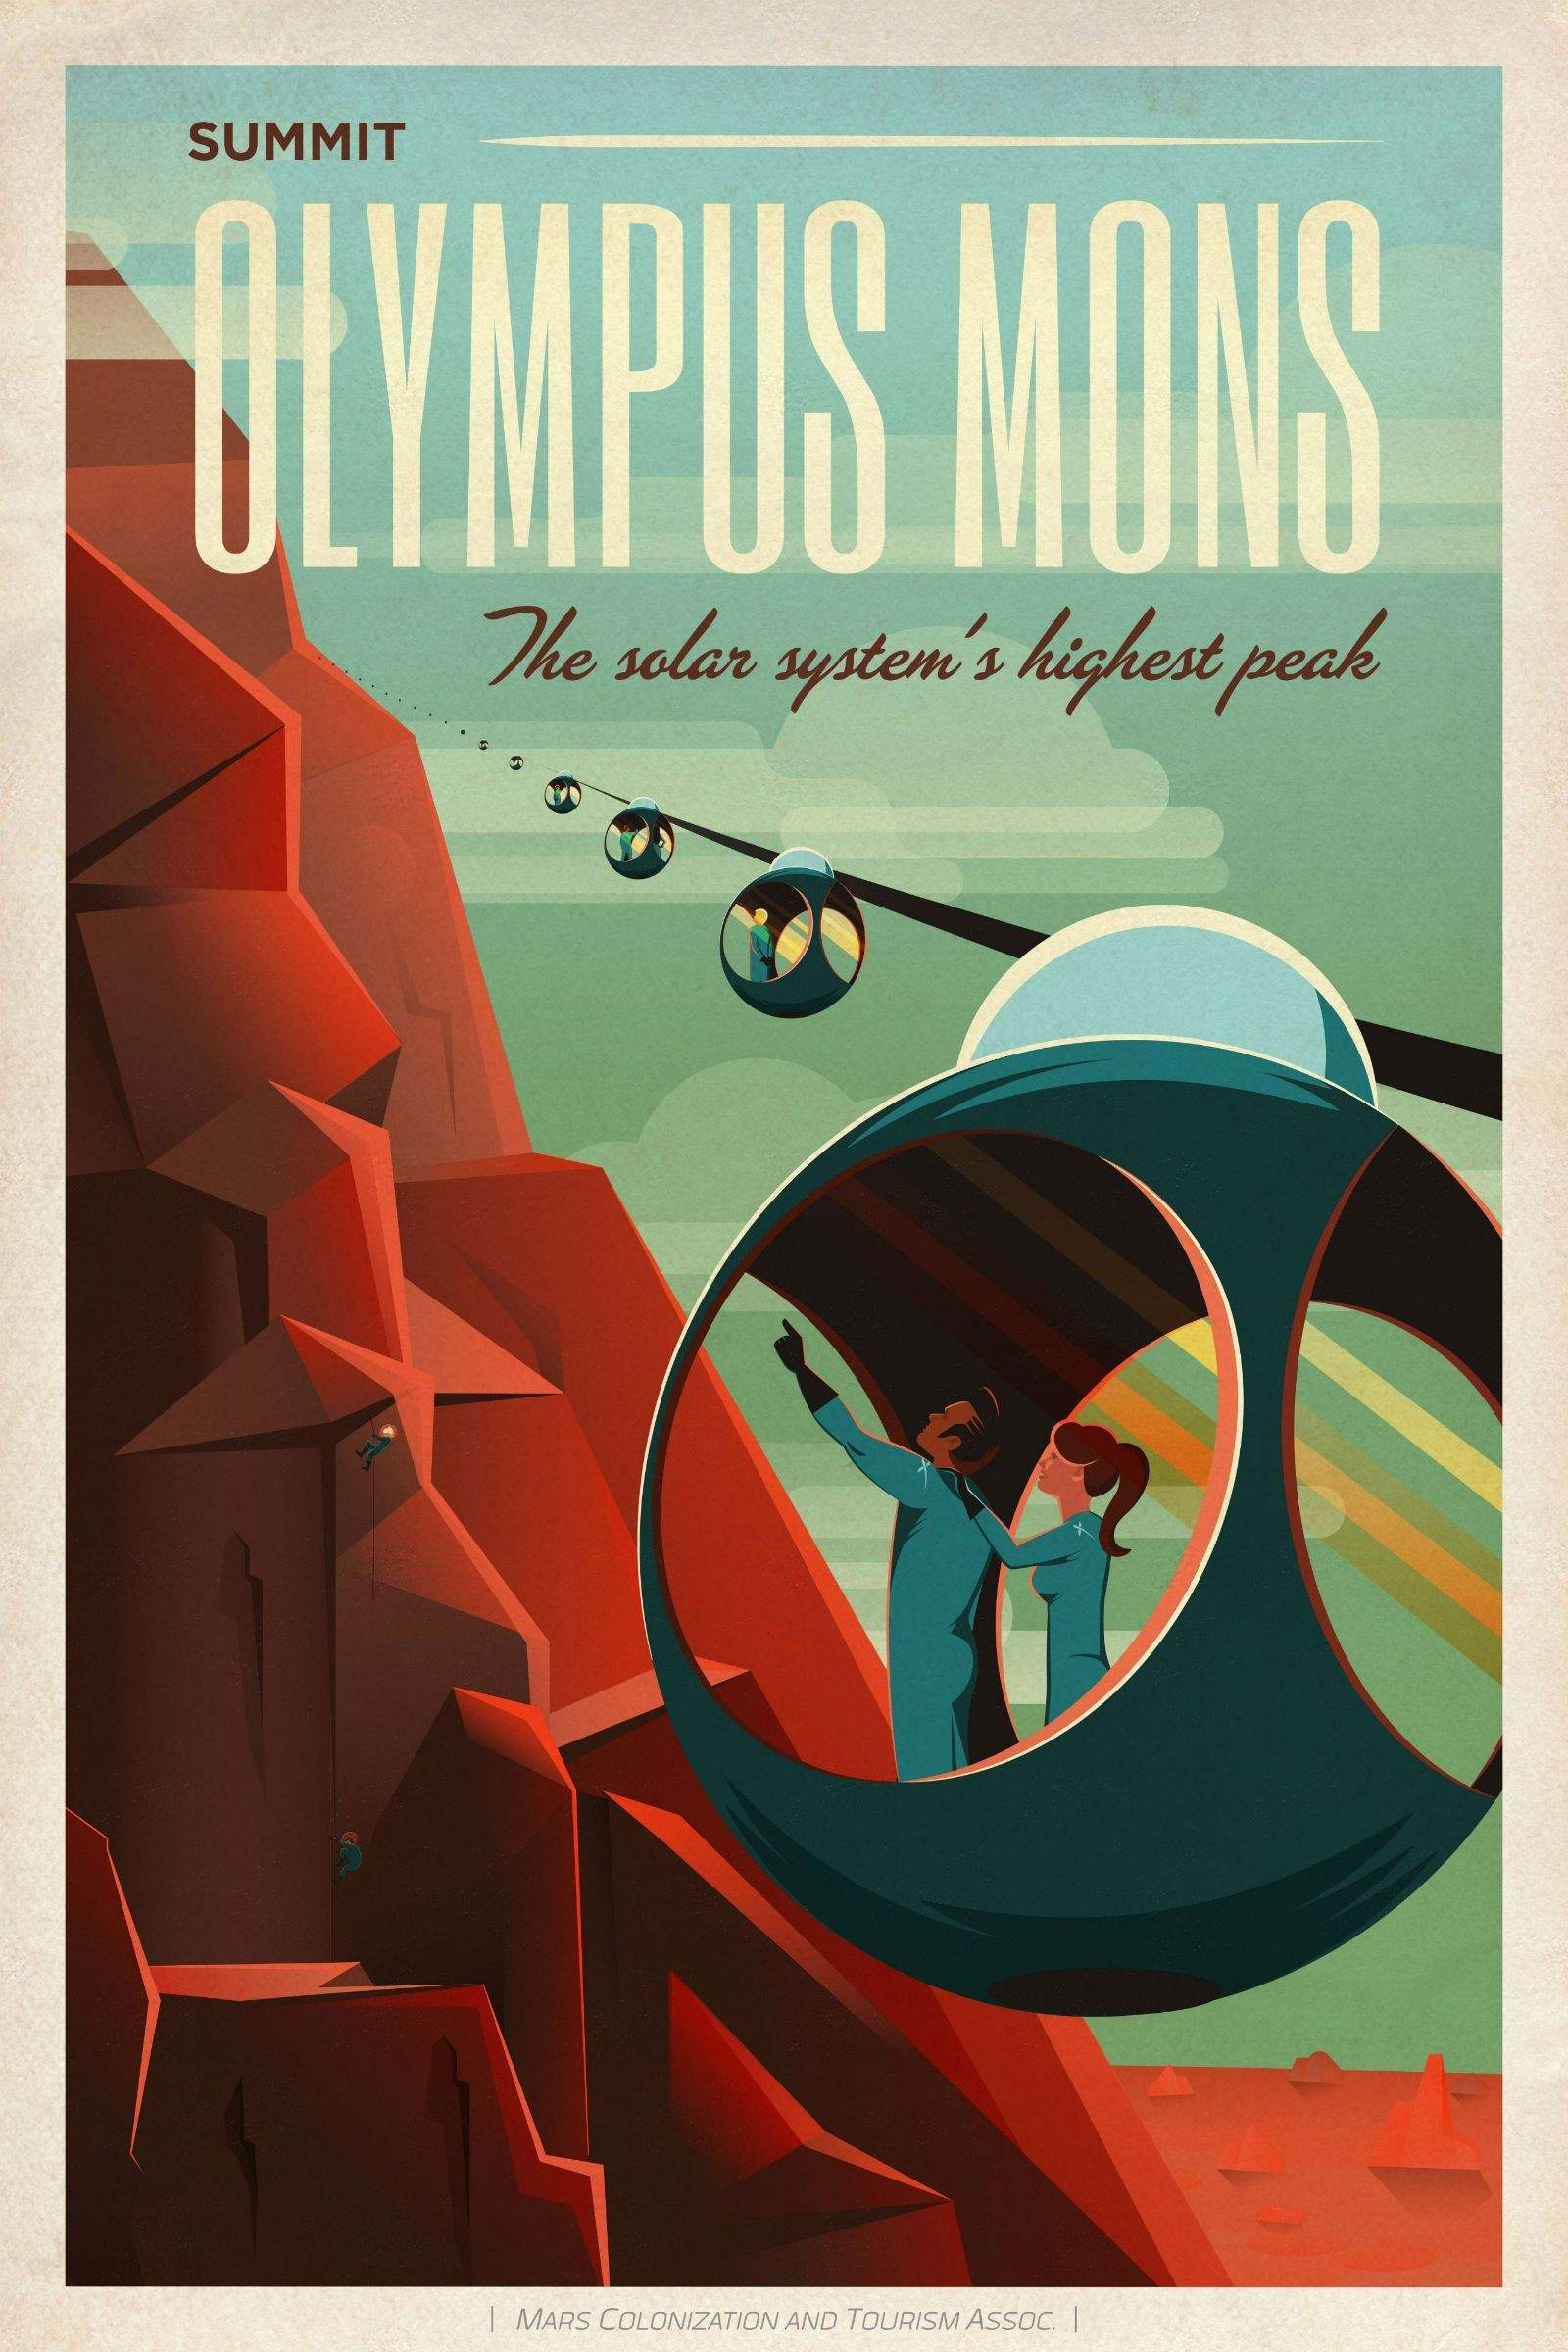 spacex u0026 39 s retro space travel posters will seduce you to mars